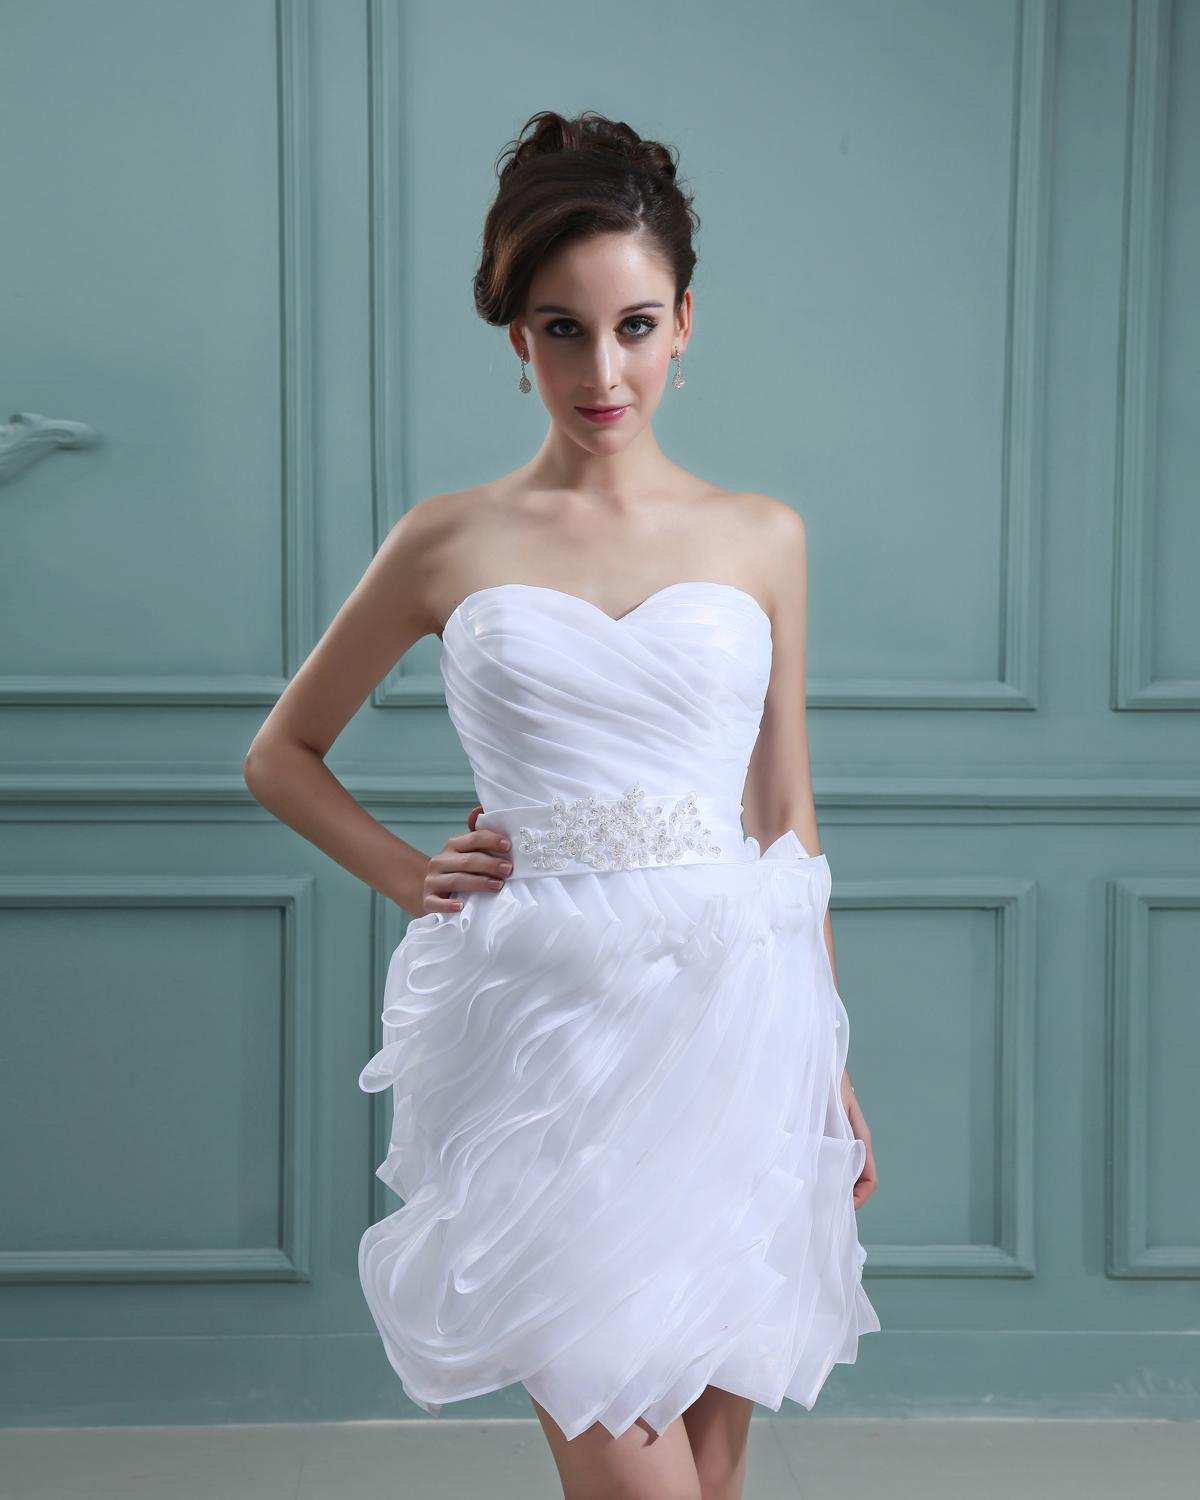 Short White Wedding Dresses Choice Image - Wedding Dress, Decoration ...